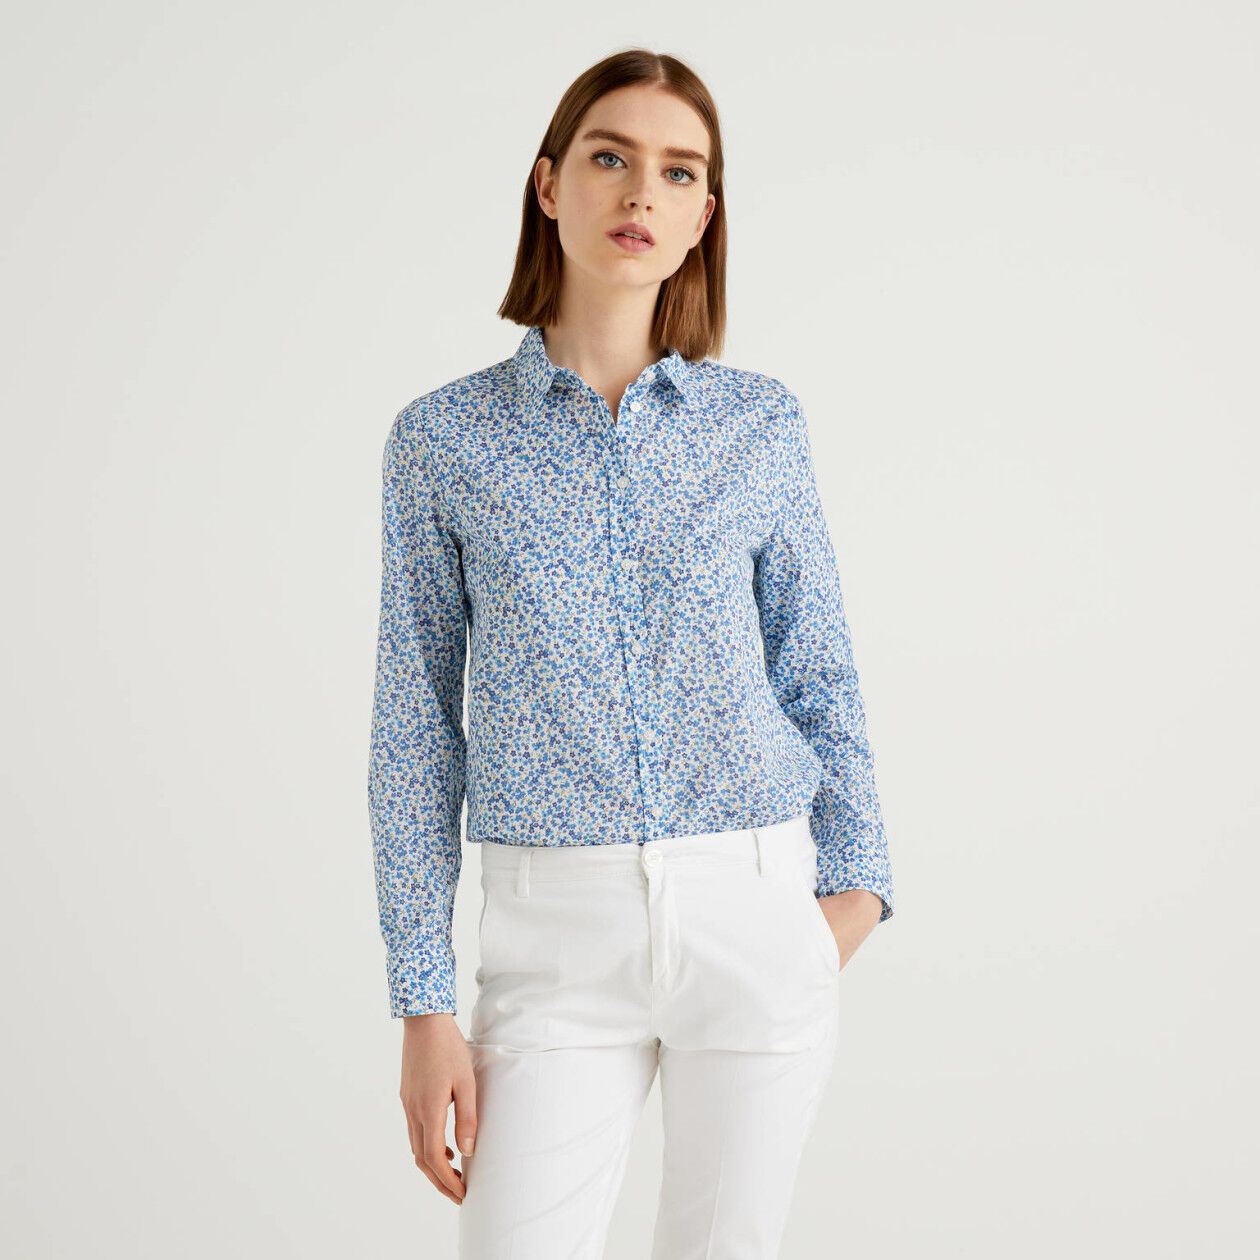 100% cotton light blue shirt with floral print